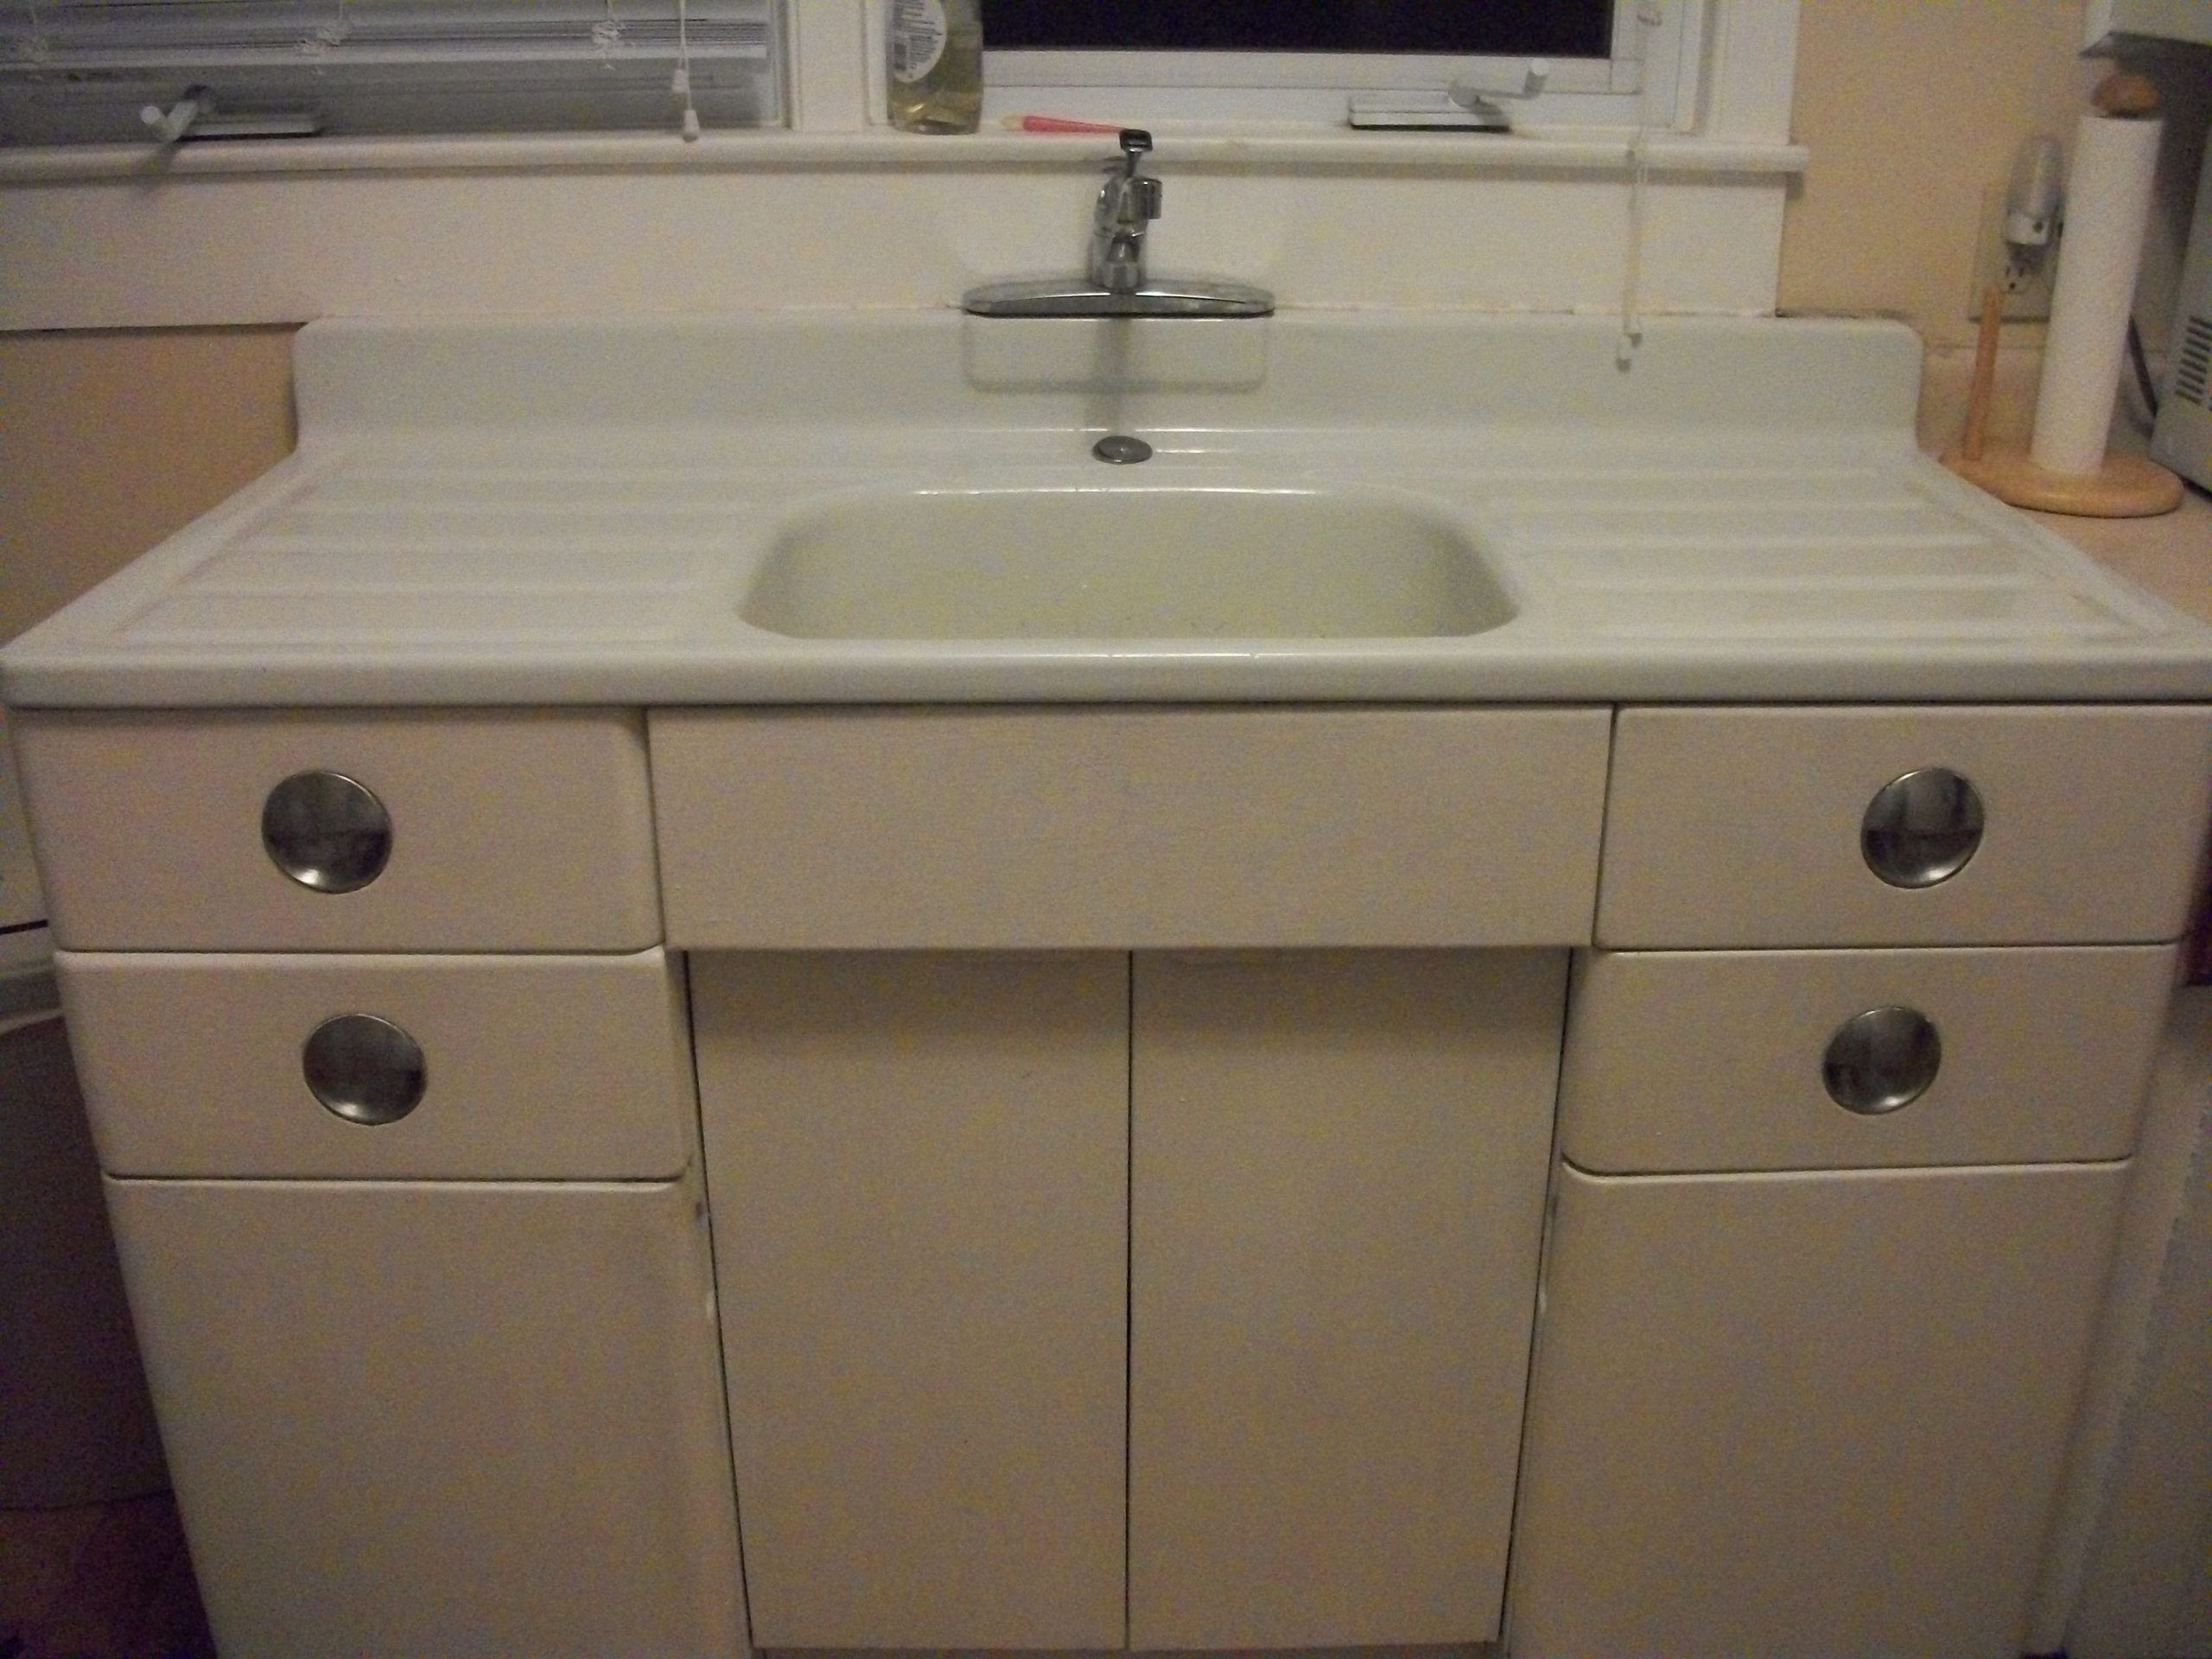 Metal Kitchen Cabinet And Porcelain Sink For Sale Antiques In